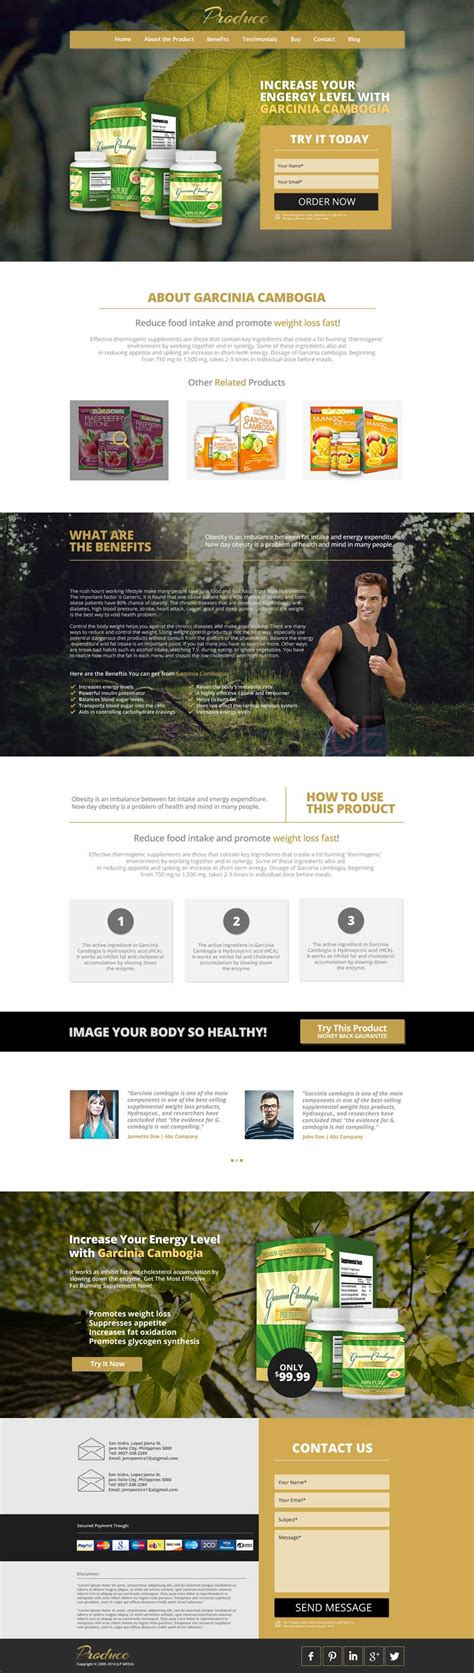 product landing page template vector image 365psd com